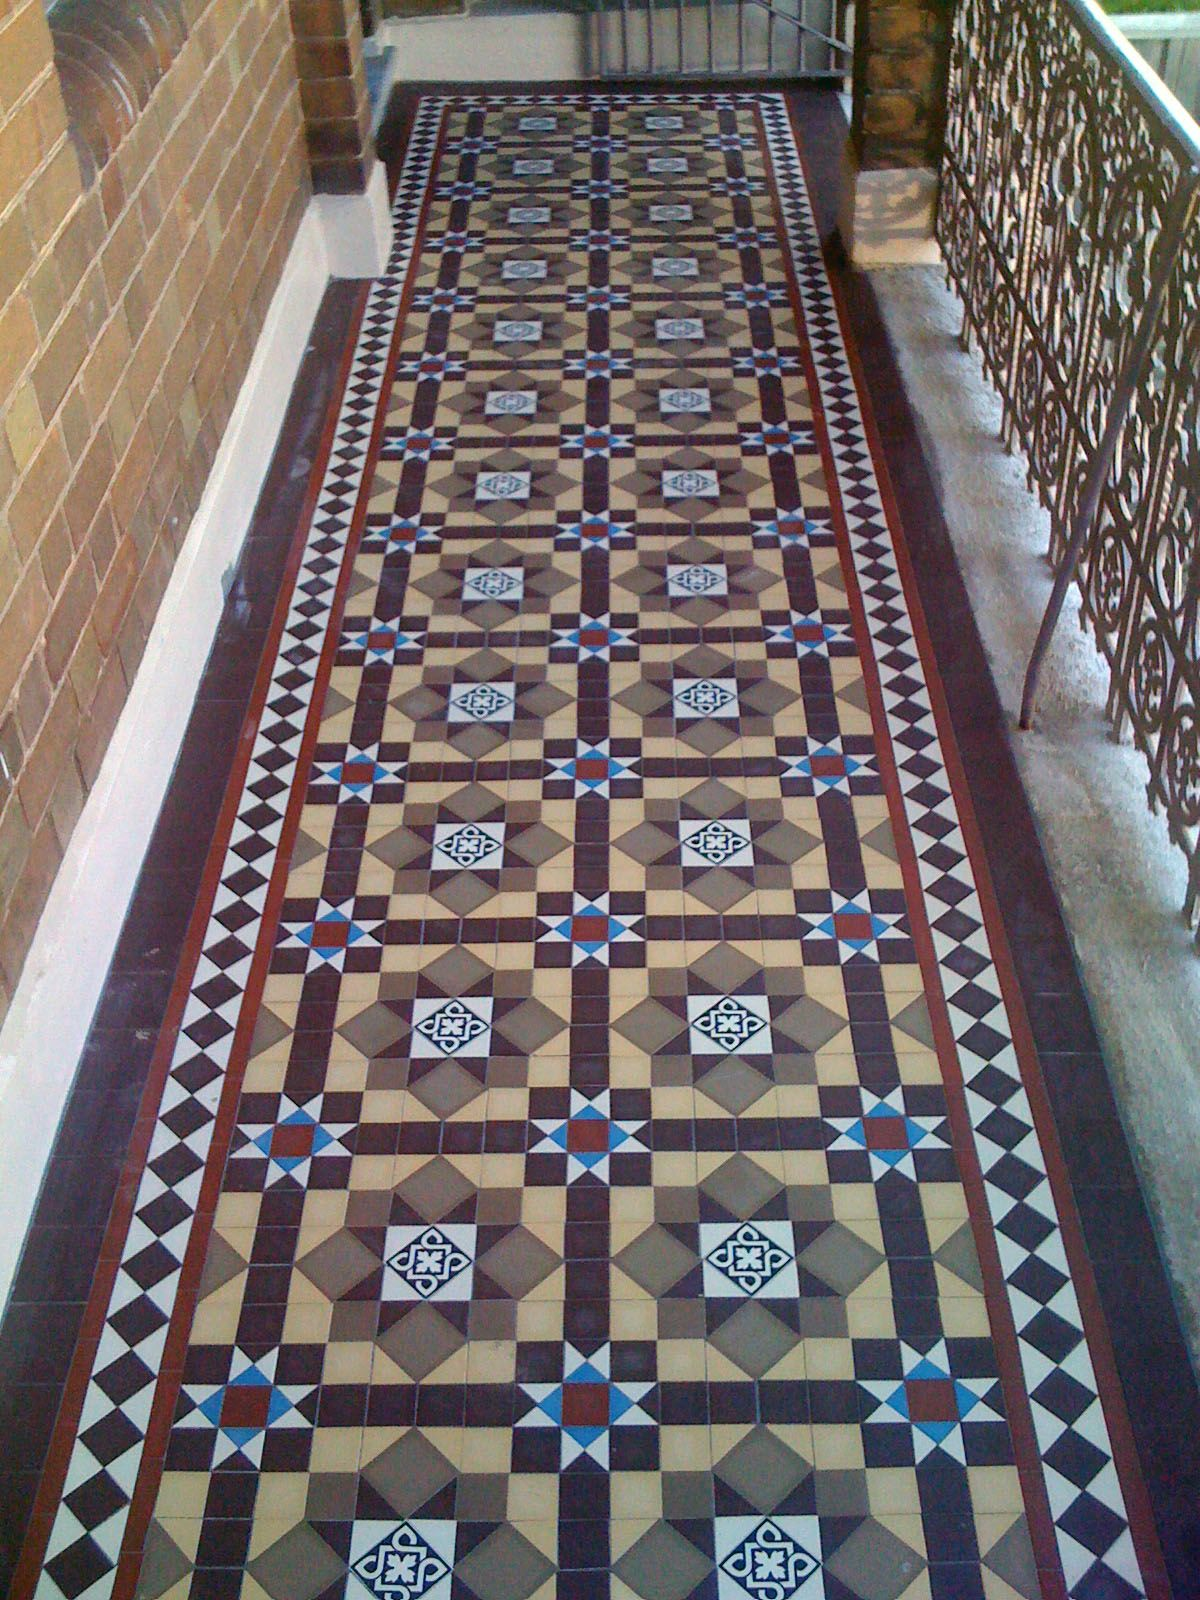 Pin by Tessellated Tile Factory on Tessellated Tiles ...